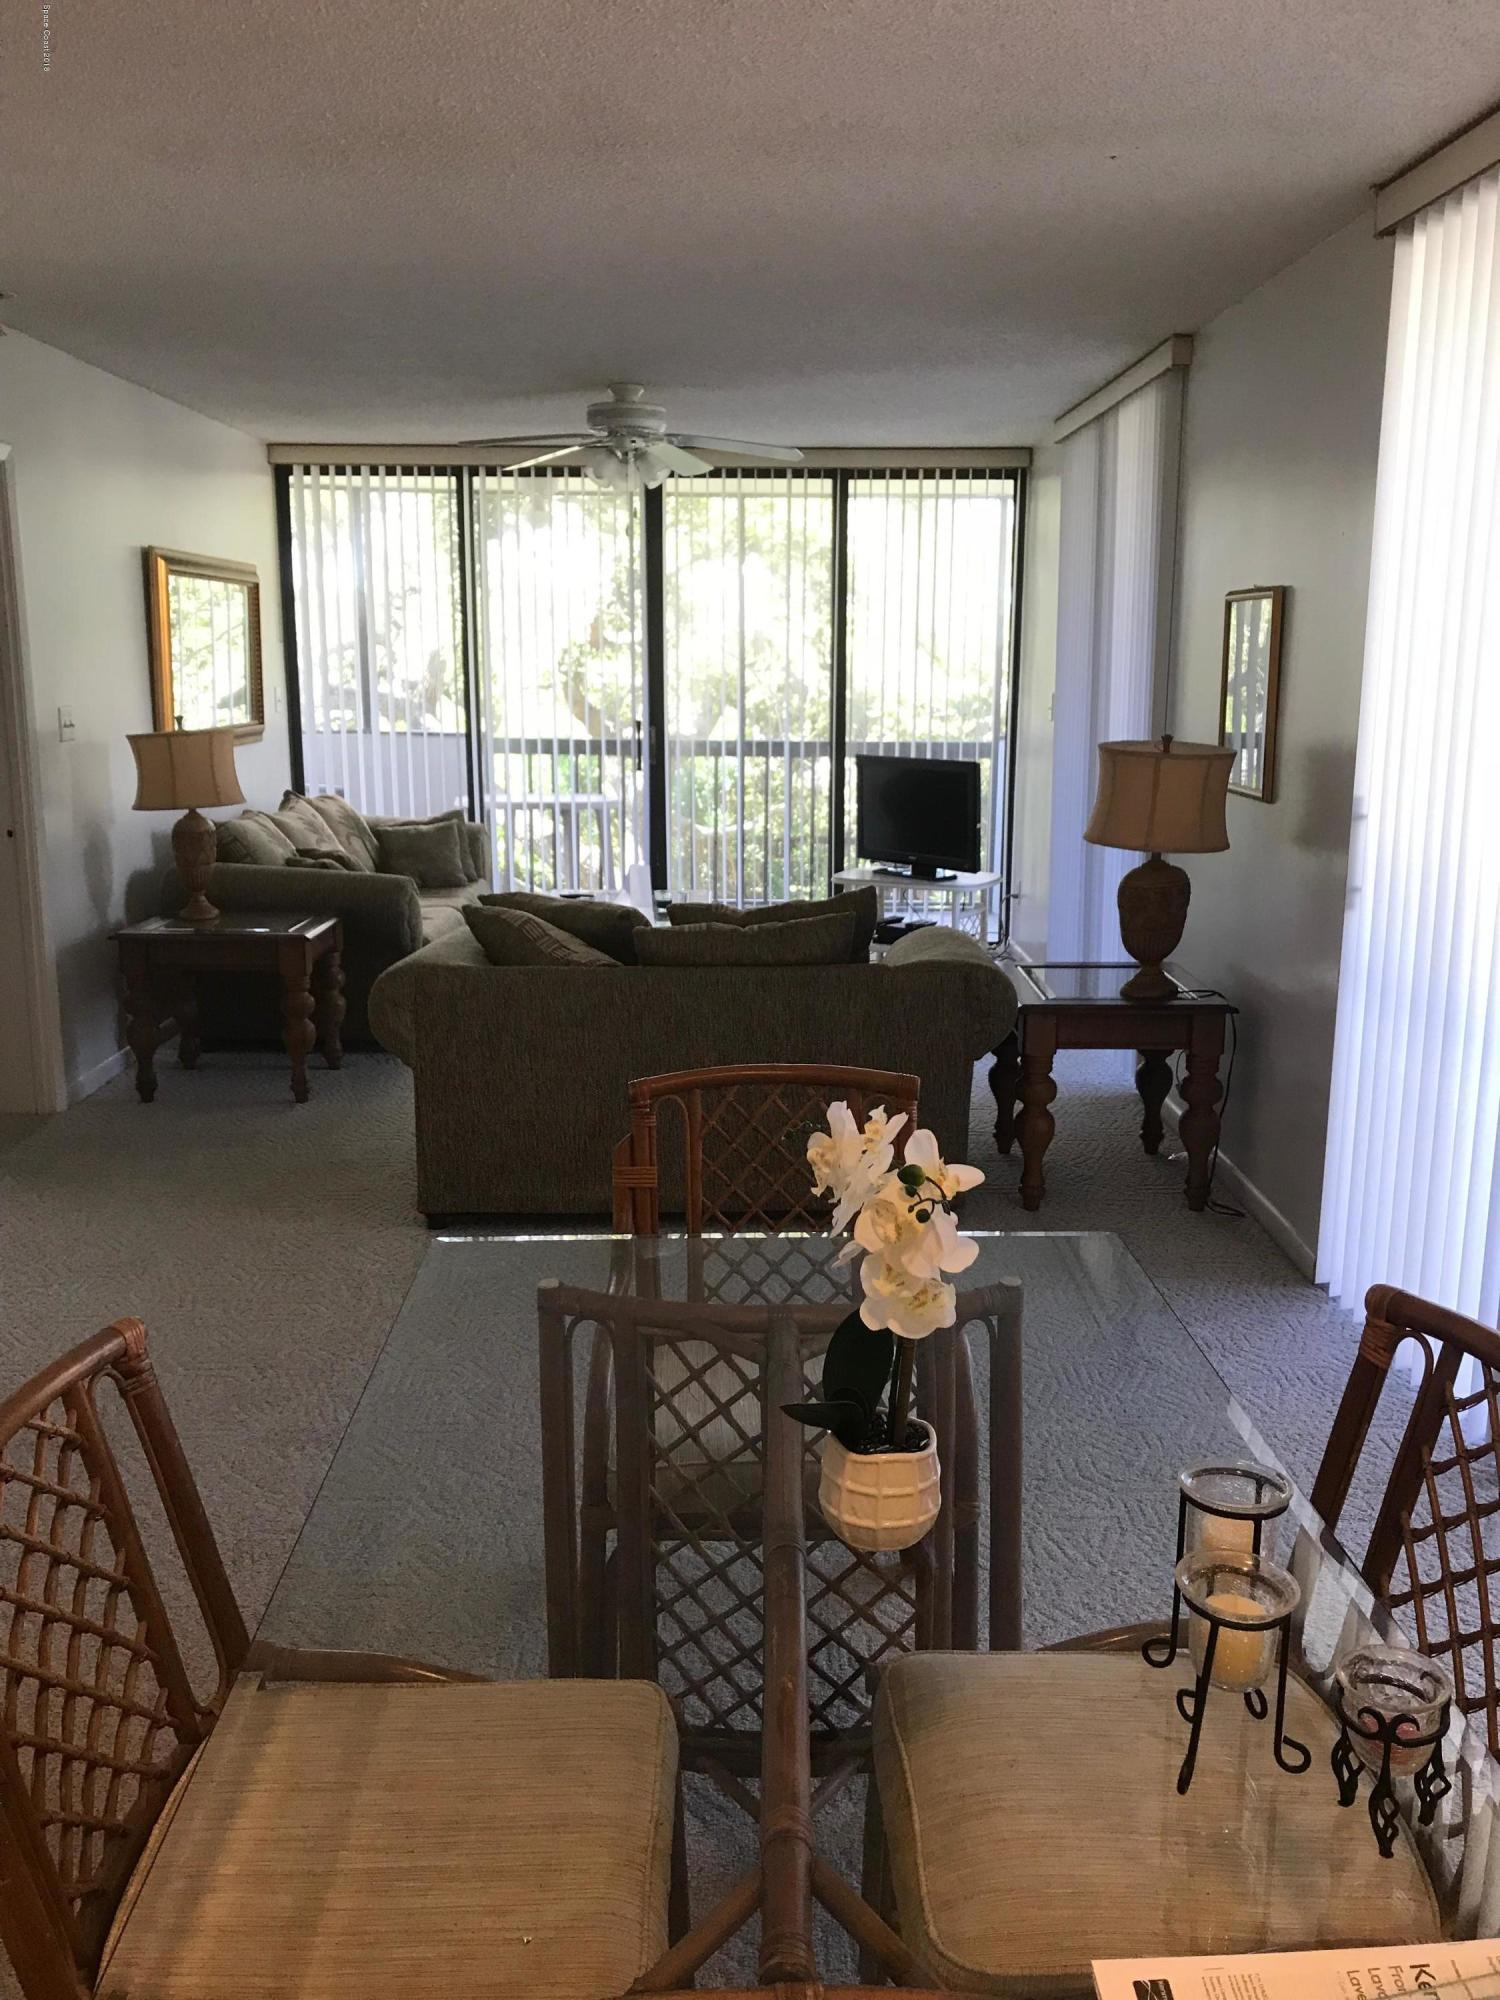 Additional photo for property listing at 300 Columbia Cape Canaveral, Florida 32920 Verenigde Staten